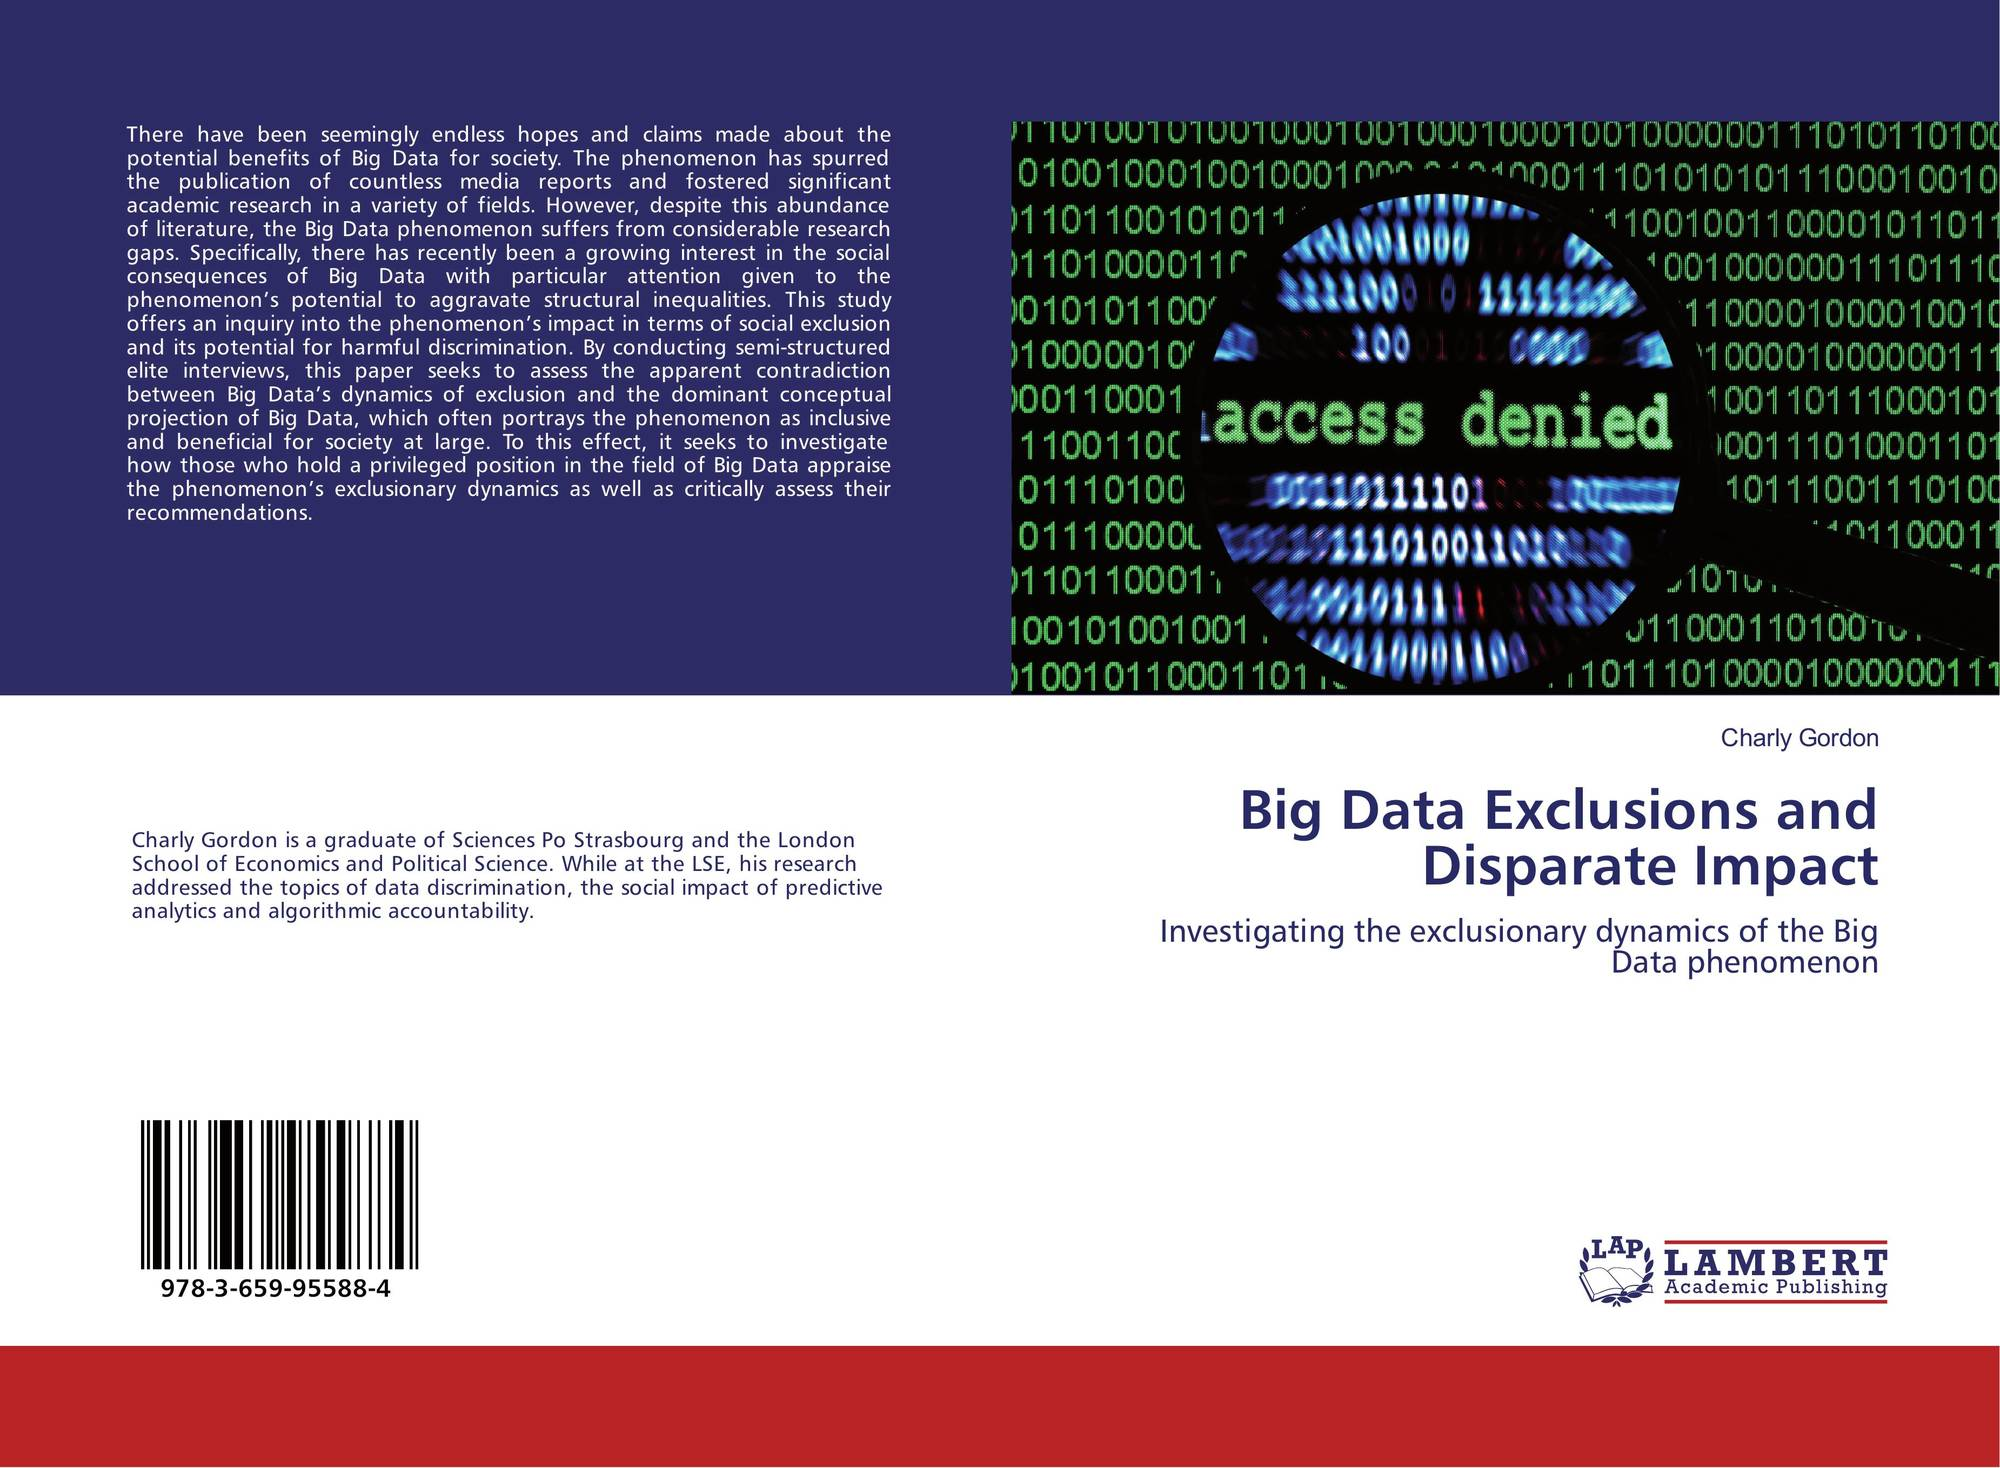 Big Data Exclusions And Disparate Impact 978 3 659 95588 4 3659955884 9783659955884 By Charly Gordon Disparate impact is a specific course of action. big data exclusions and disparate